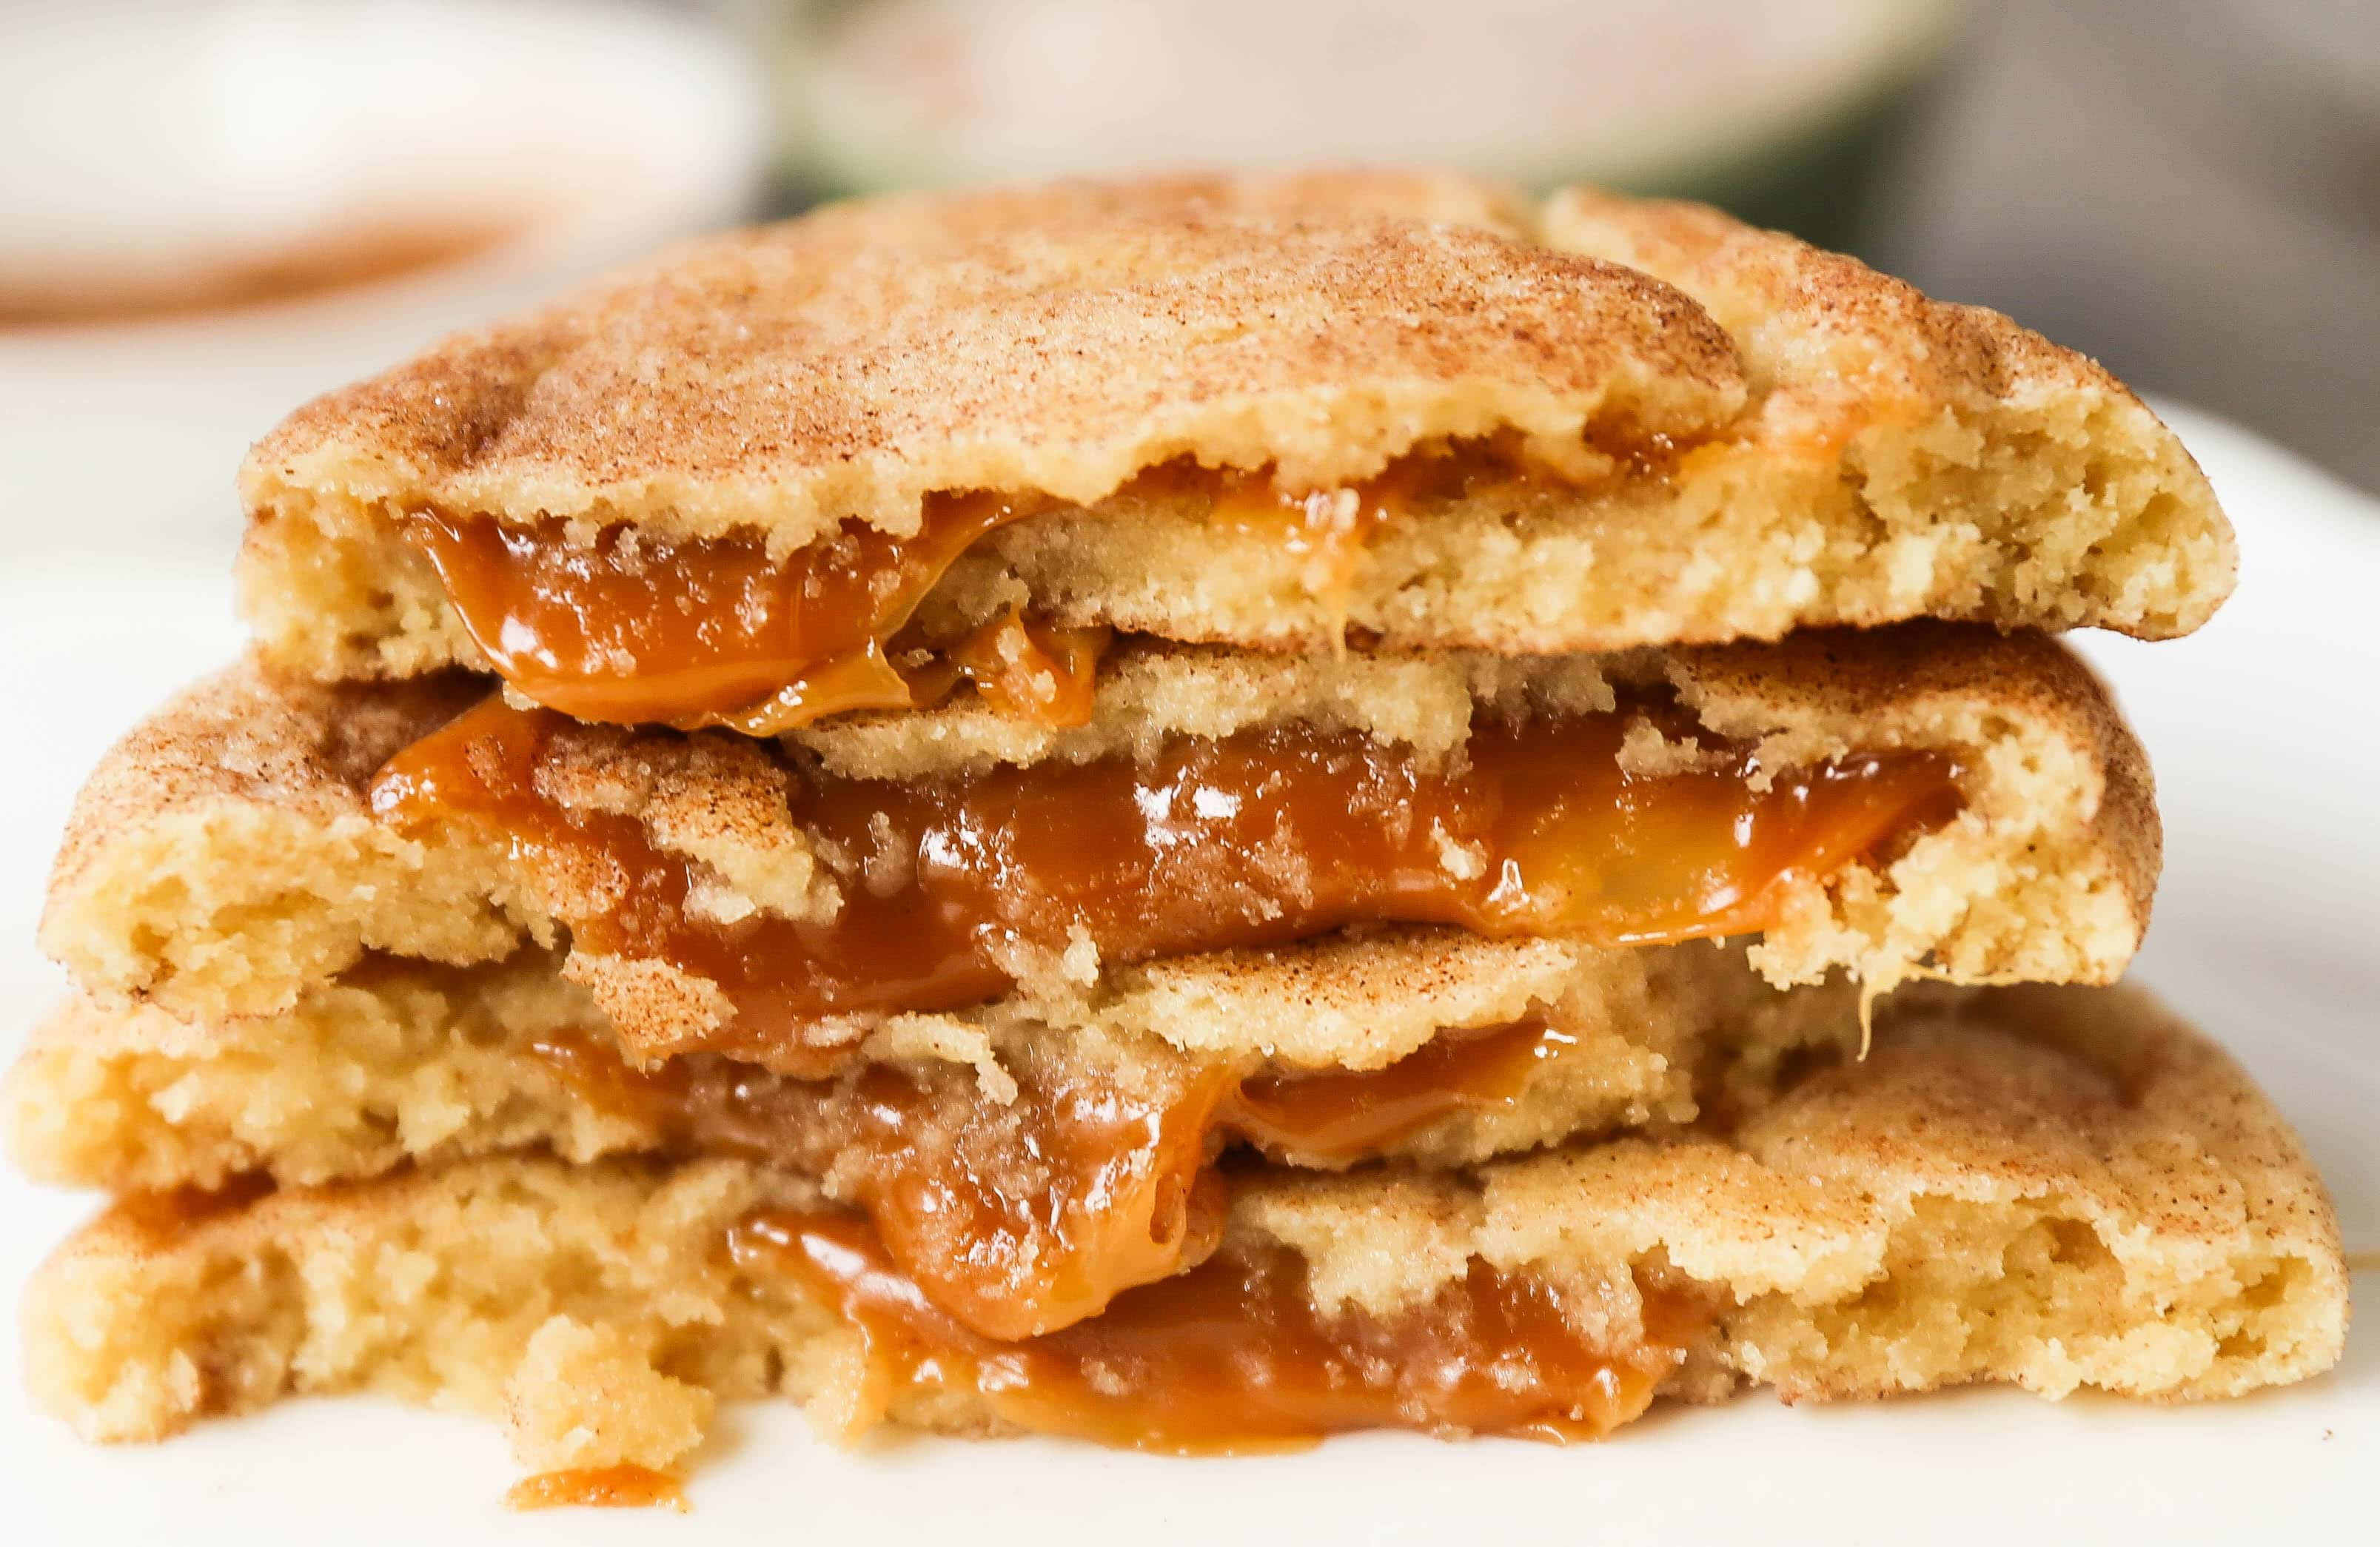 Caramel Filled Snickerdoodle Cookies Soft chewy cinnamon sugar snickerdoodle cookies stuffed with buttery caramel. The perfect caramel stuffed snickerdoodle cookie recipe! www.modernhoney.com #caramelsnickerdoodles #christmascookies #cookie #cookies